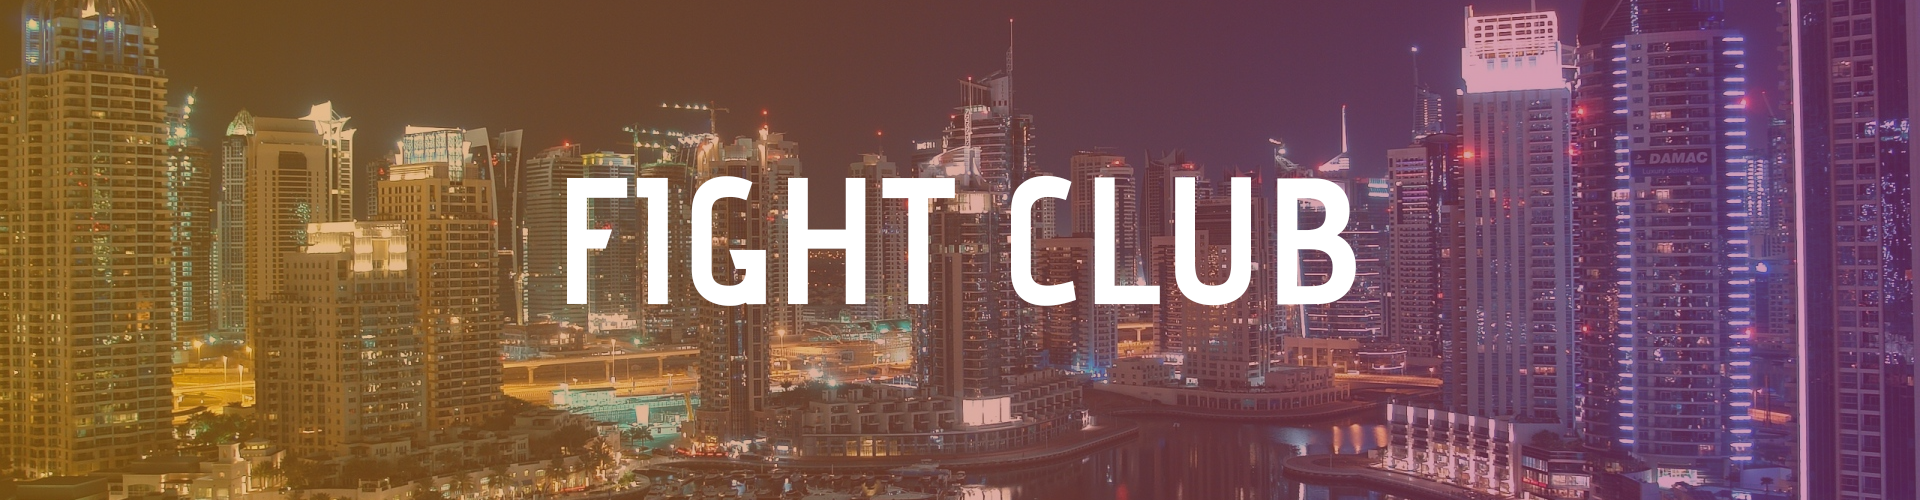 What Can We Learn From Fight Club?